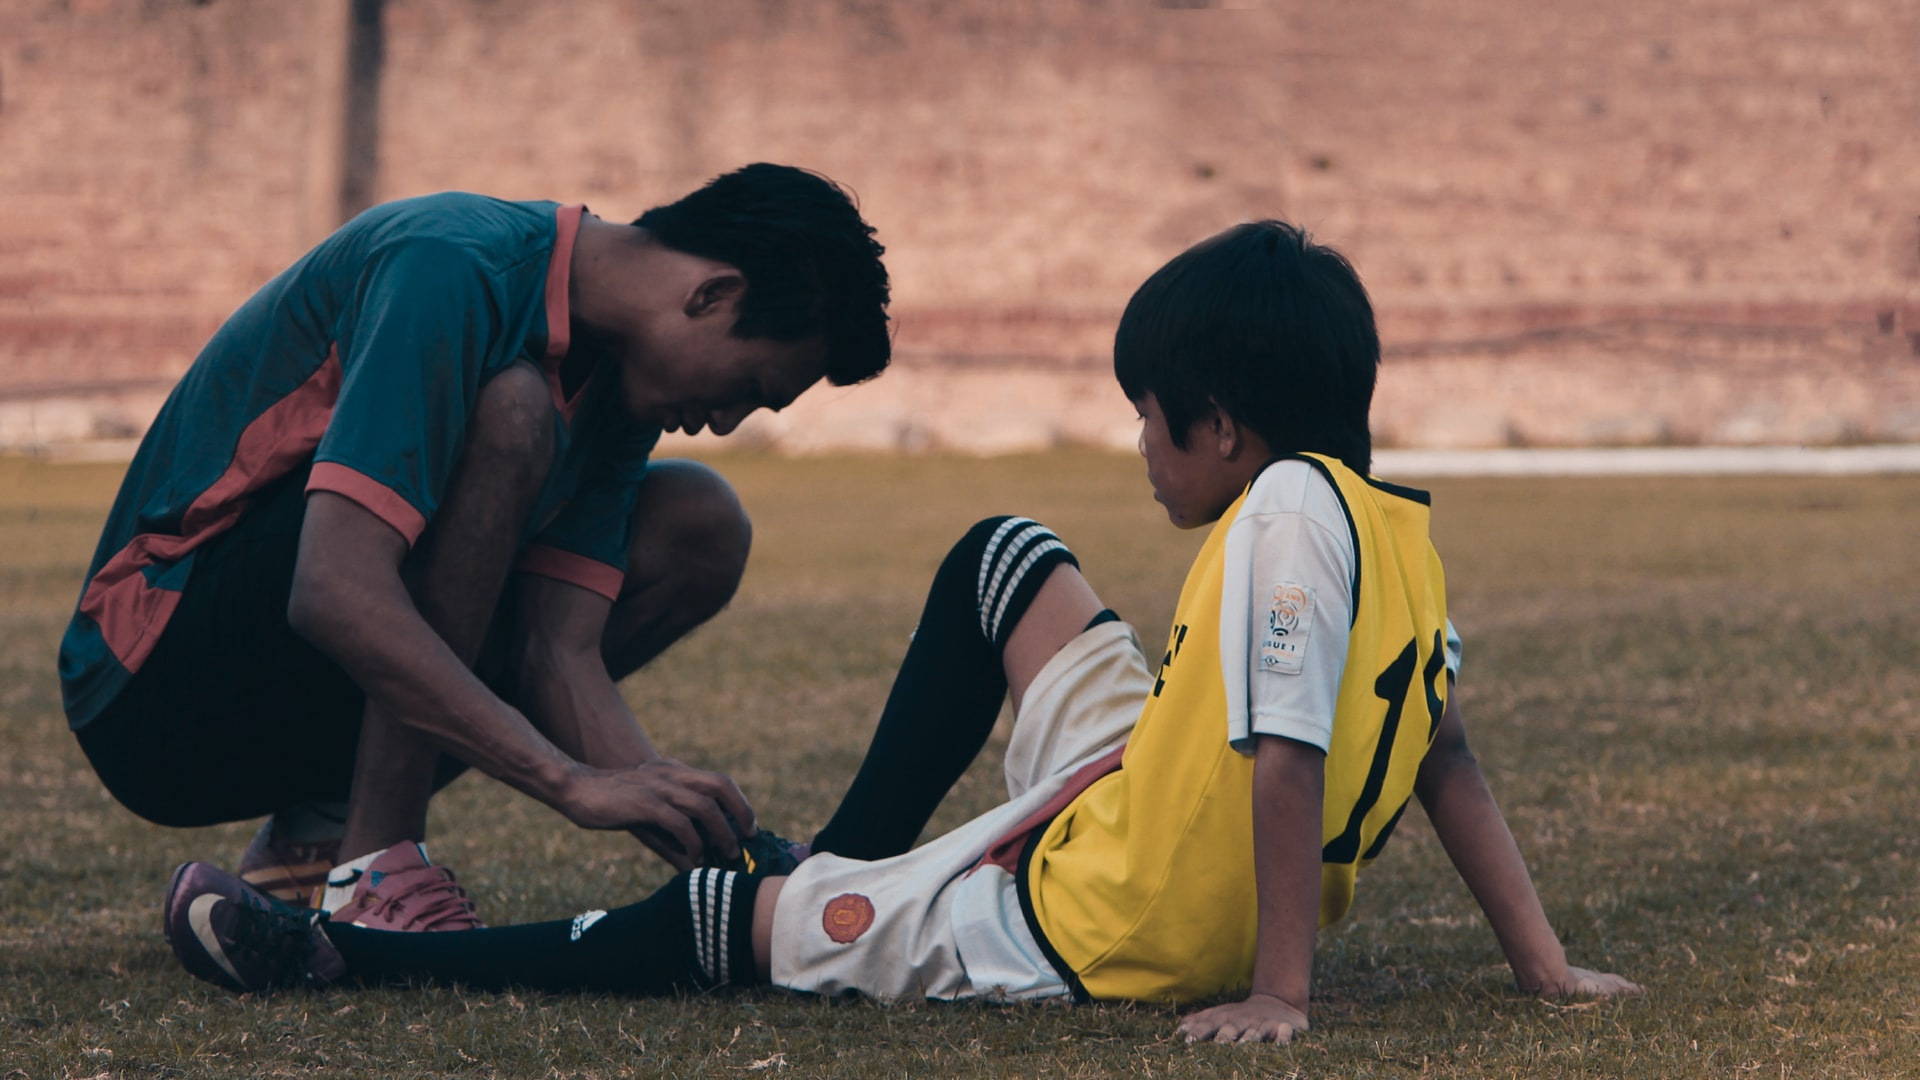 Injuries and Professional Traumas in Football